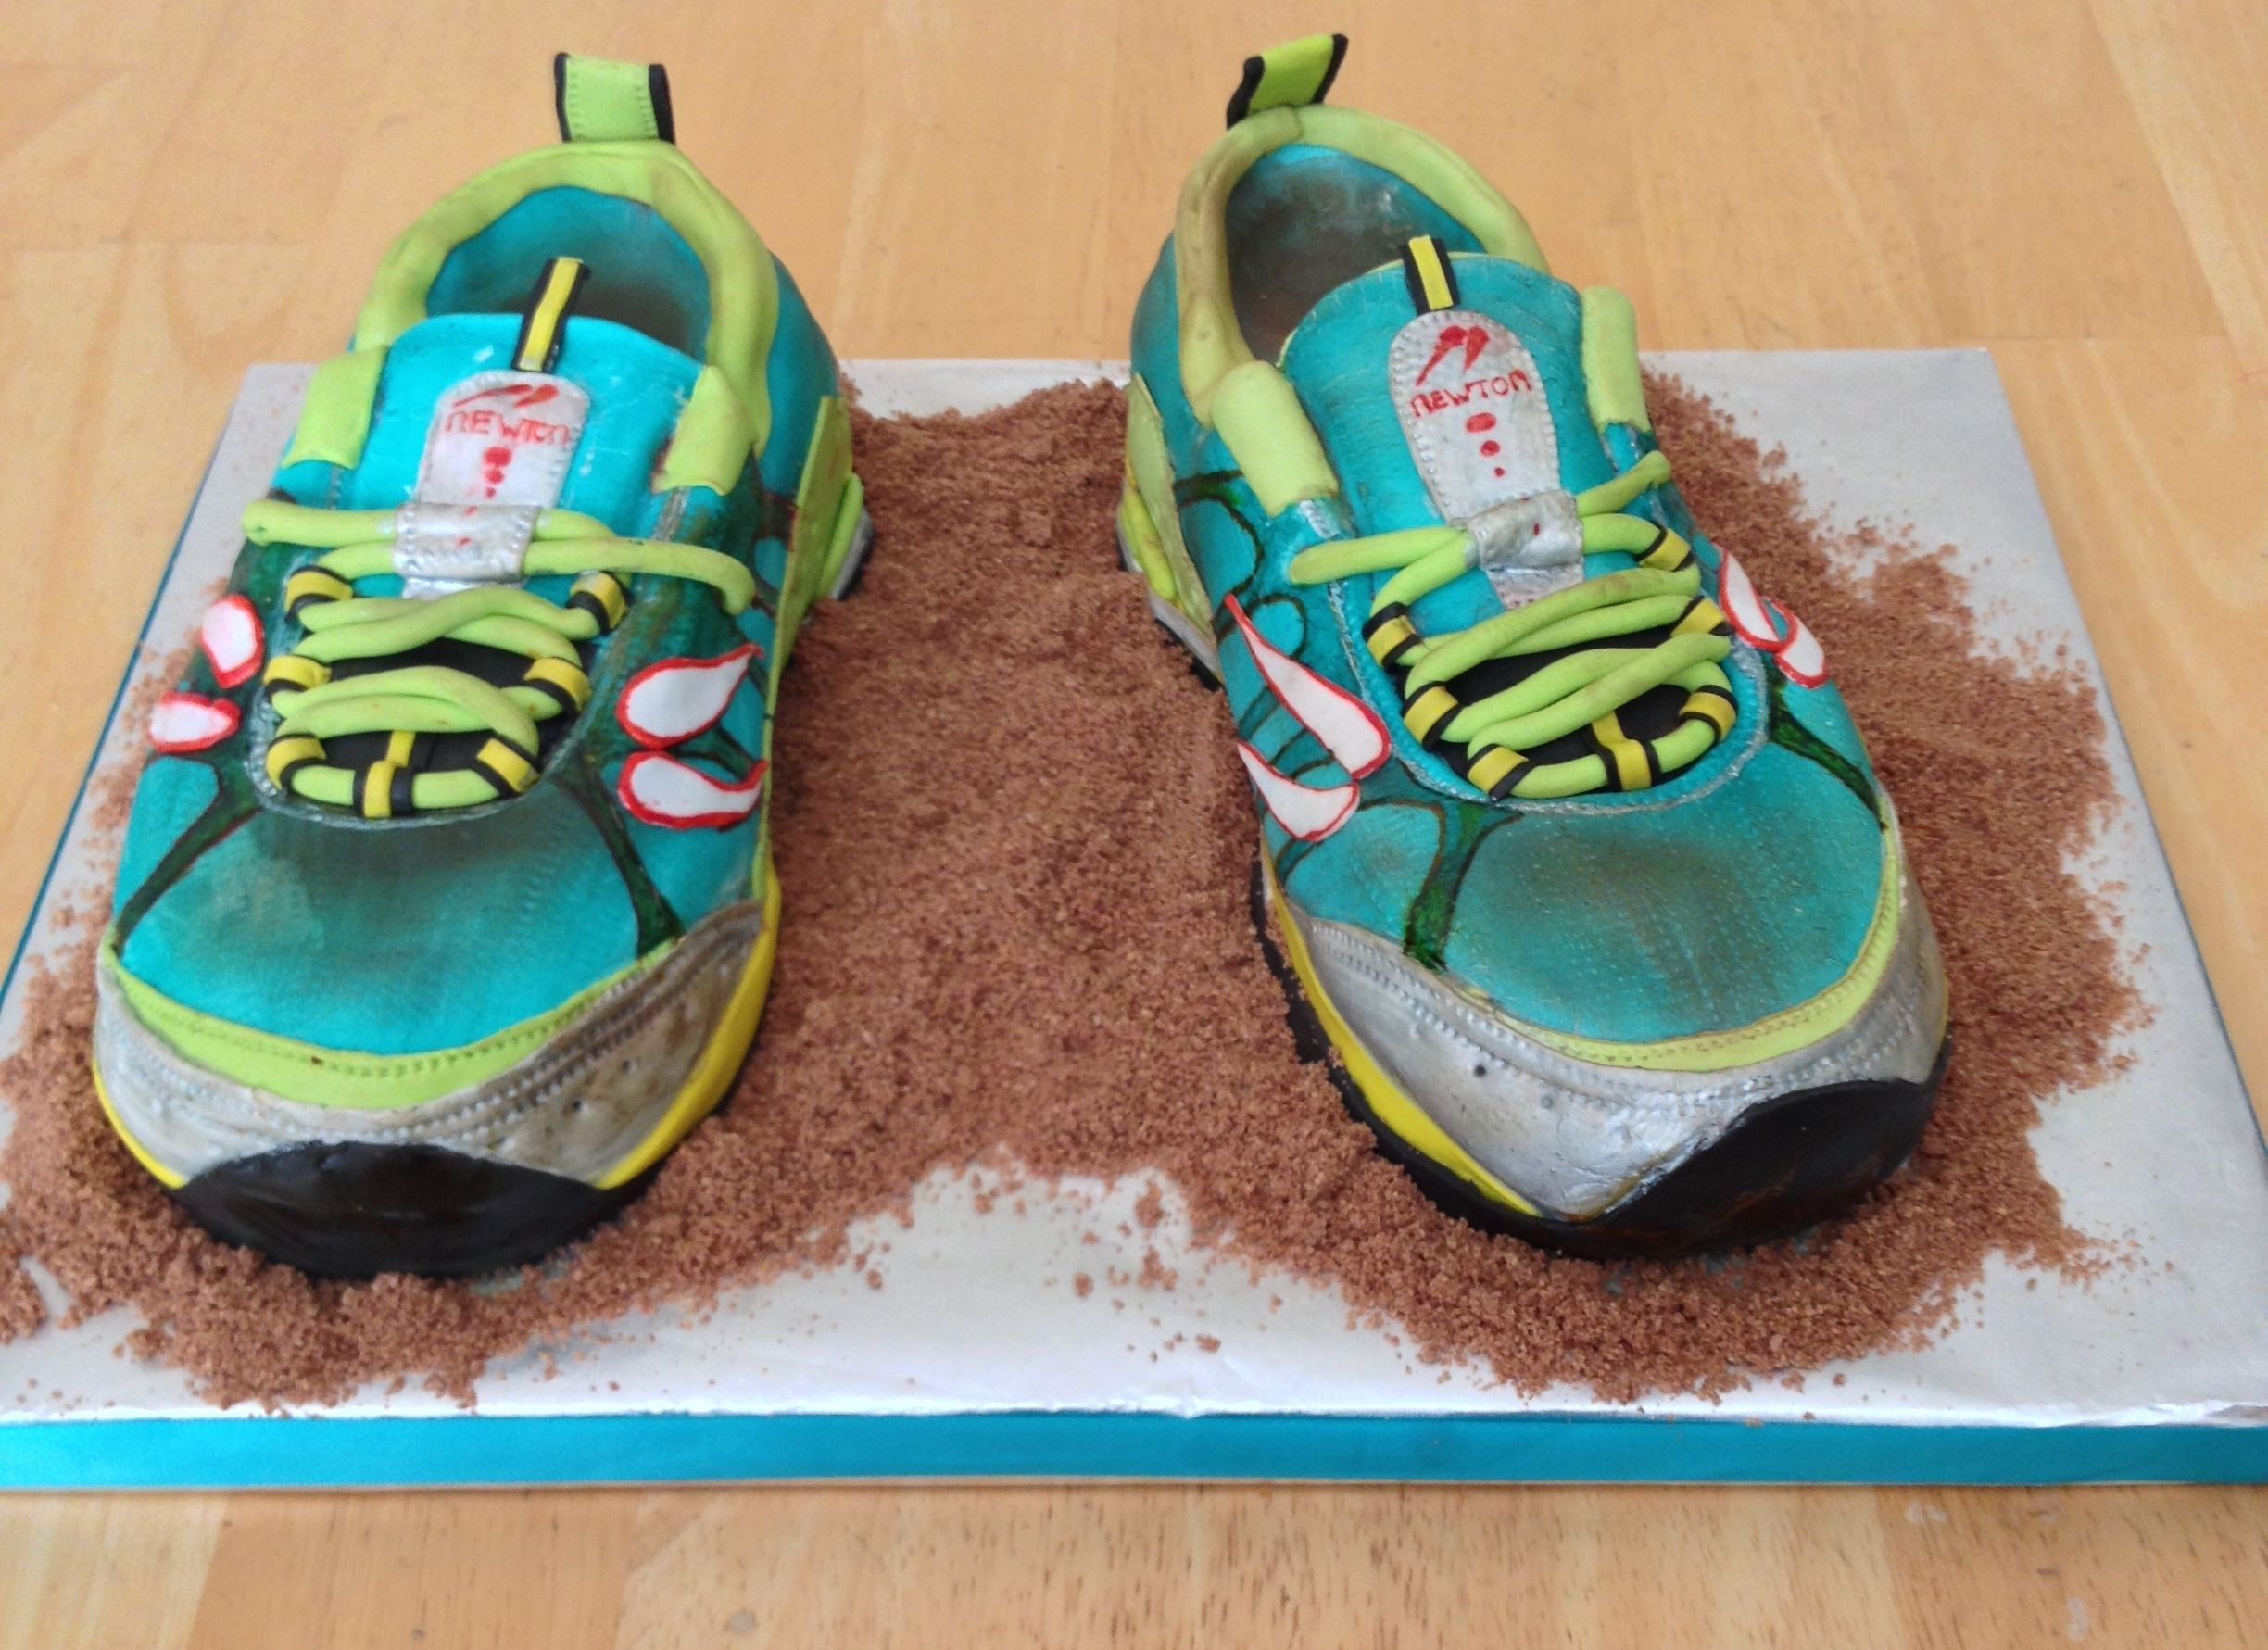 Awesome cakes! Terra Momentus Running Shoe - 40th Birthday Shoe for a  Marathon Runner by